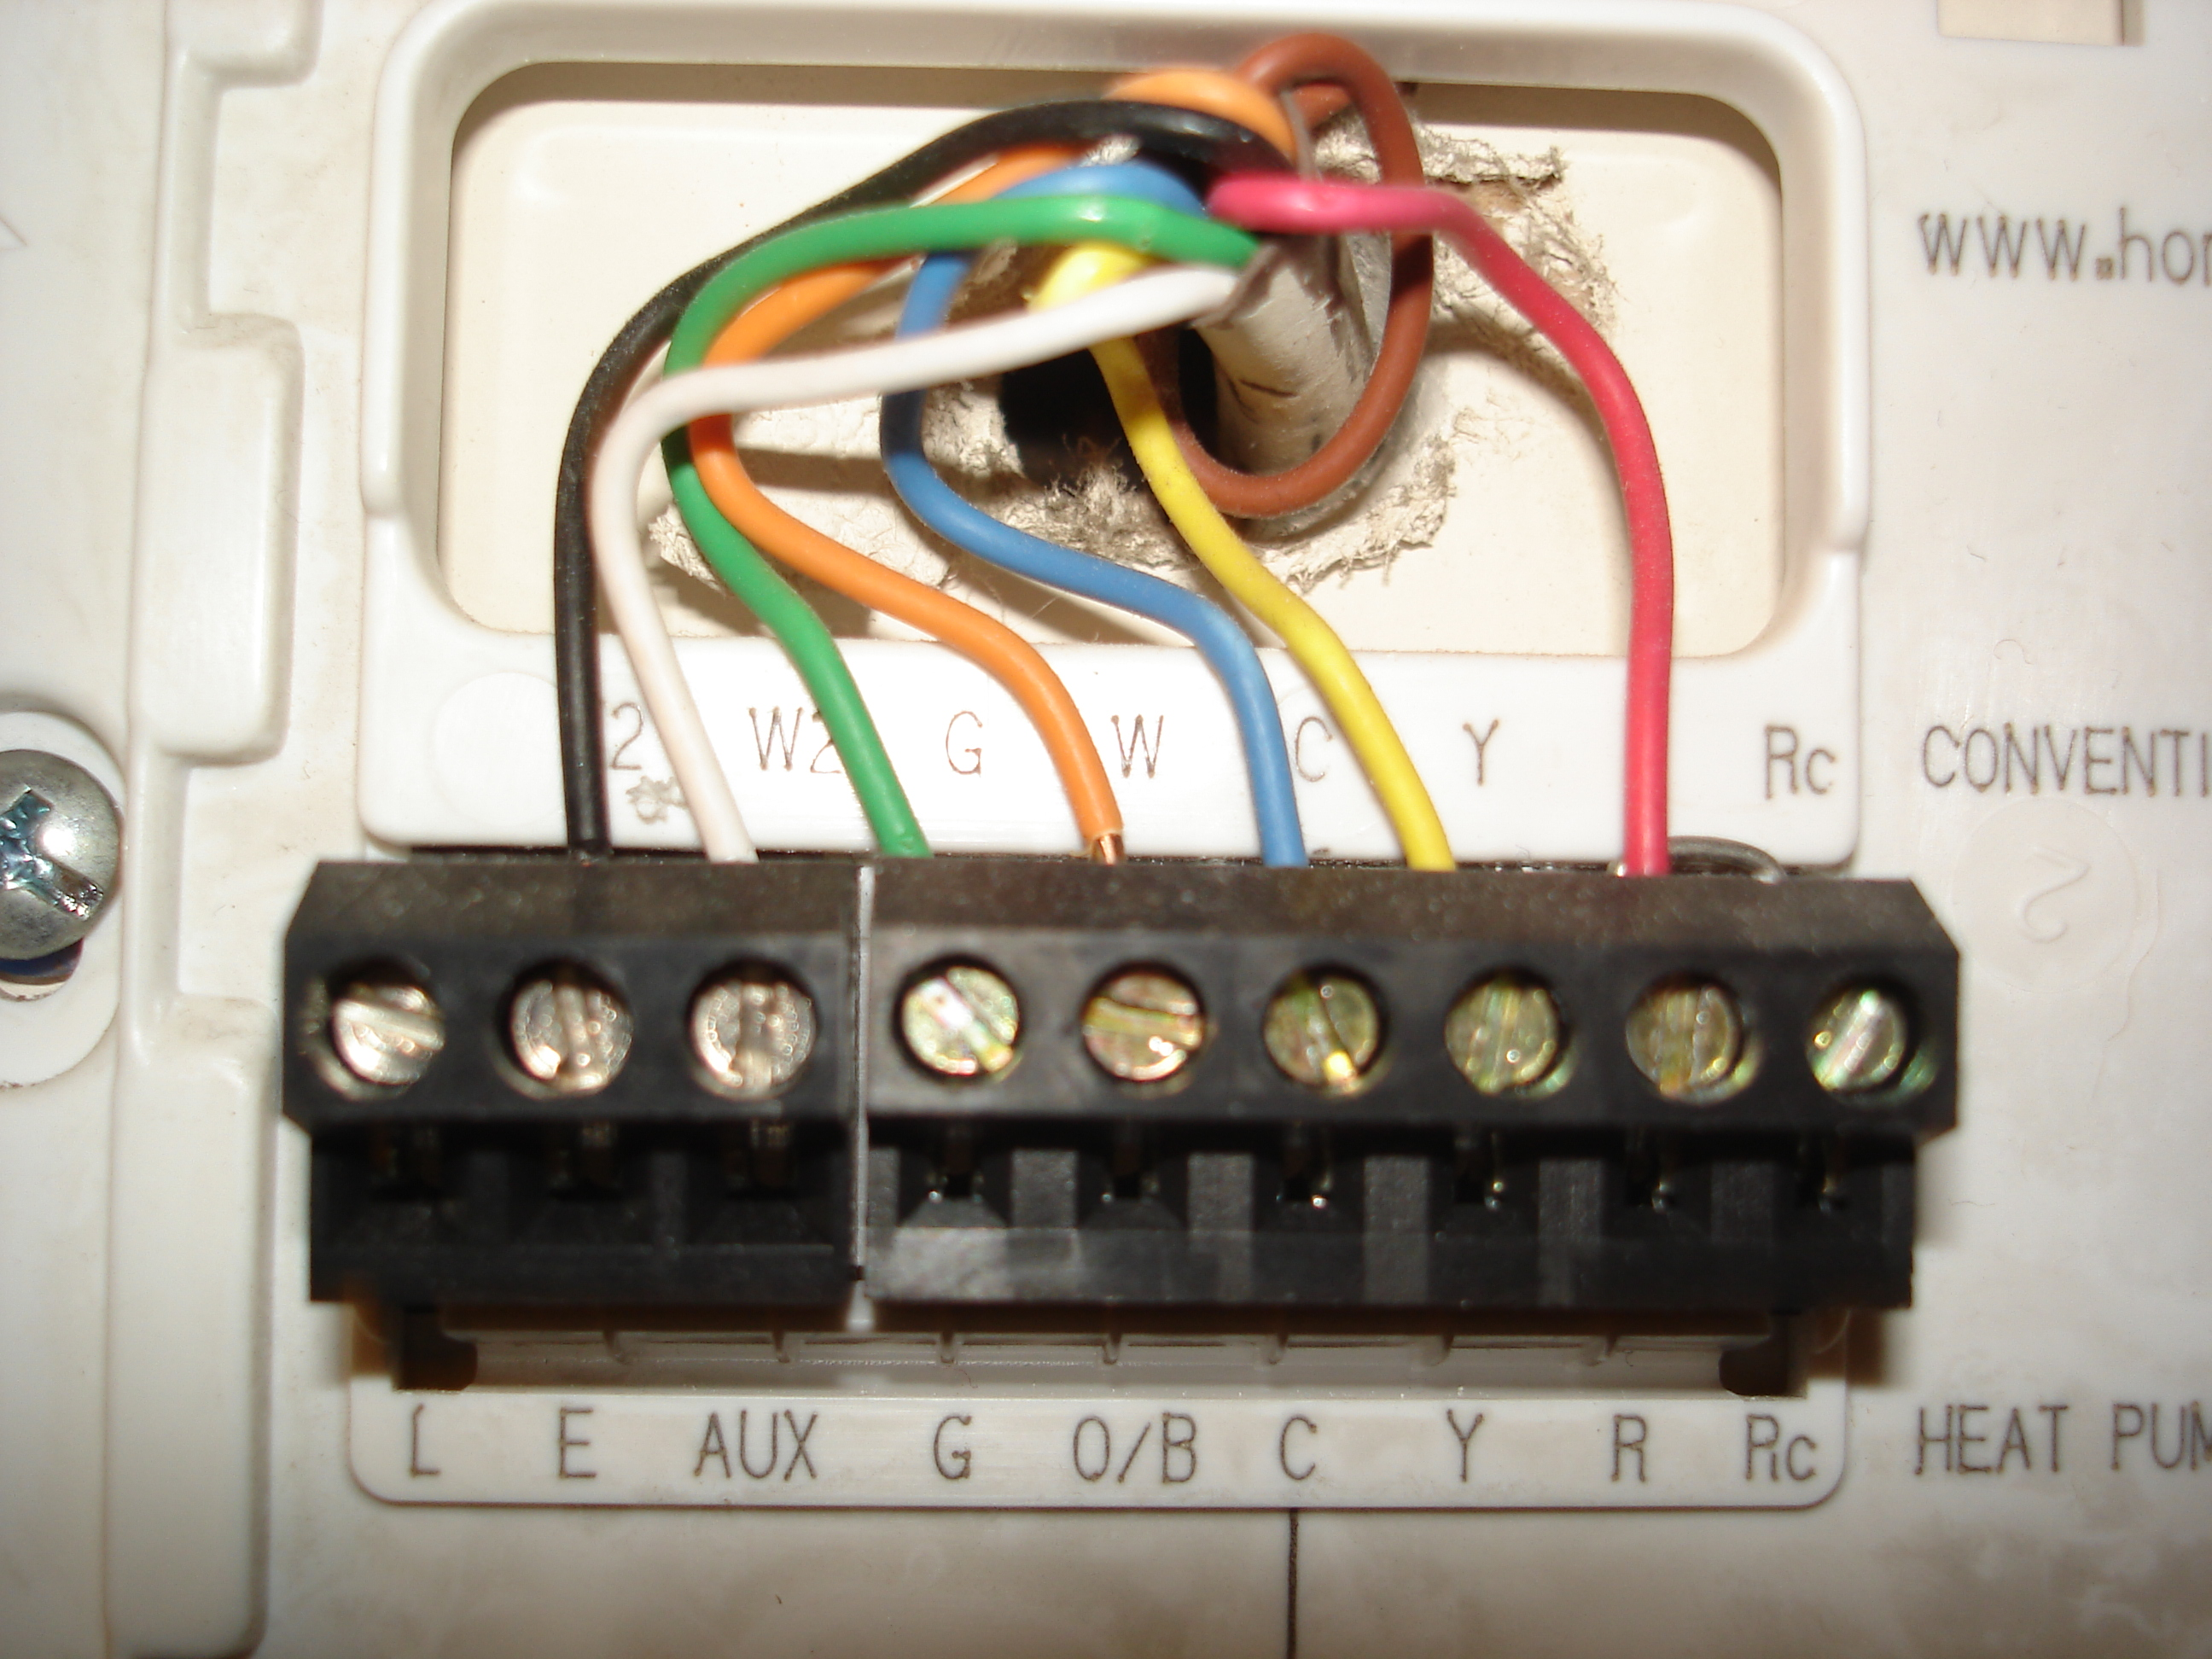 honeywell rth2300 thermostat wiring diagram 1970 fj40 » saving some green, part 1